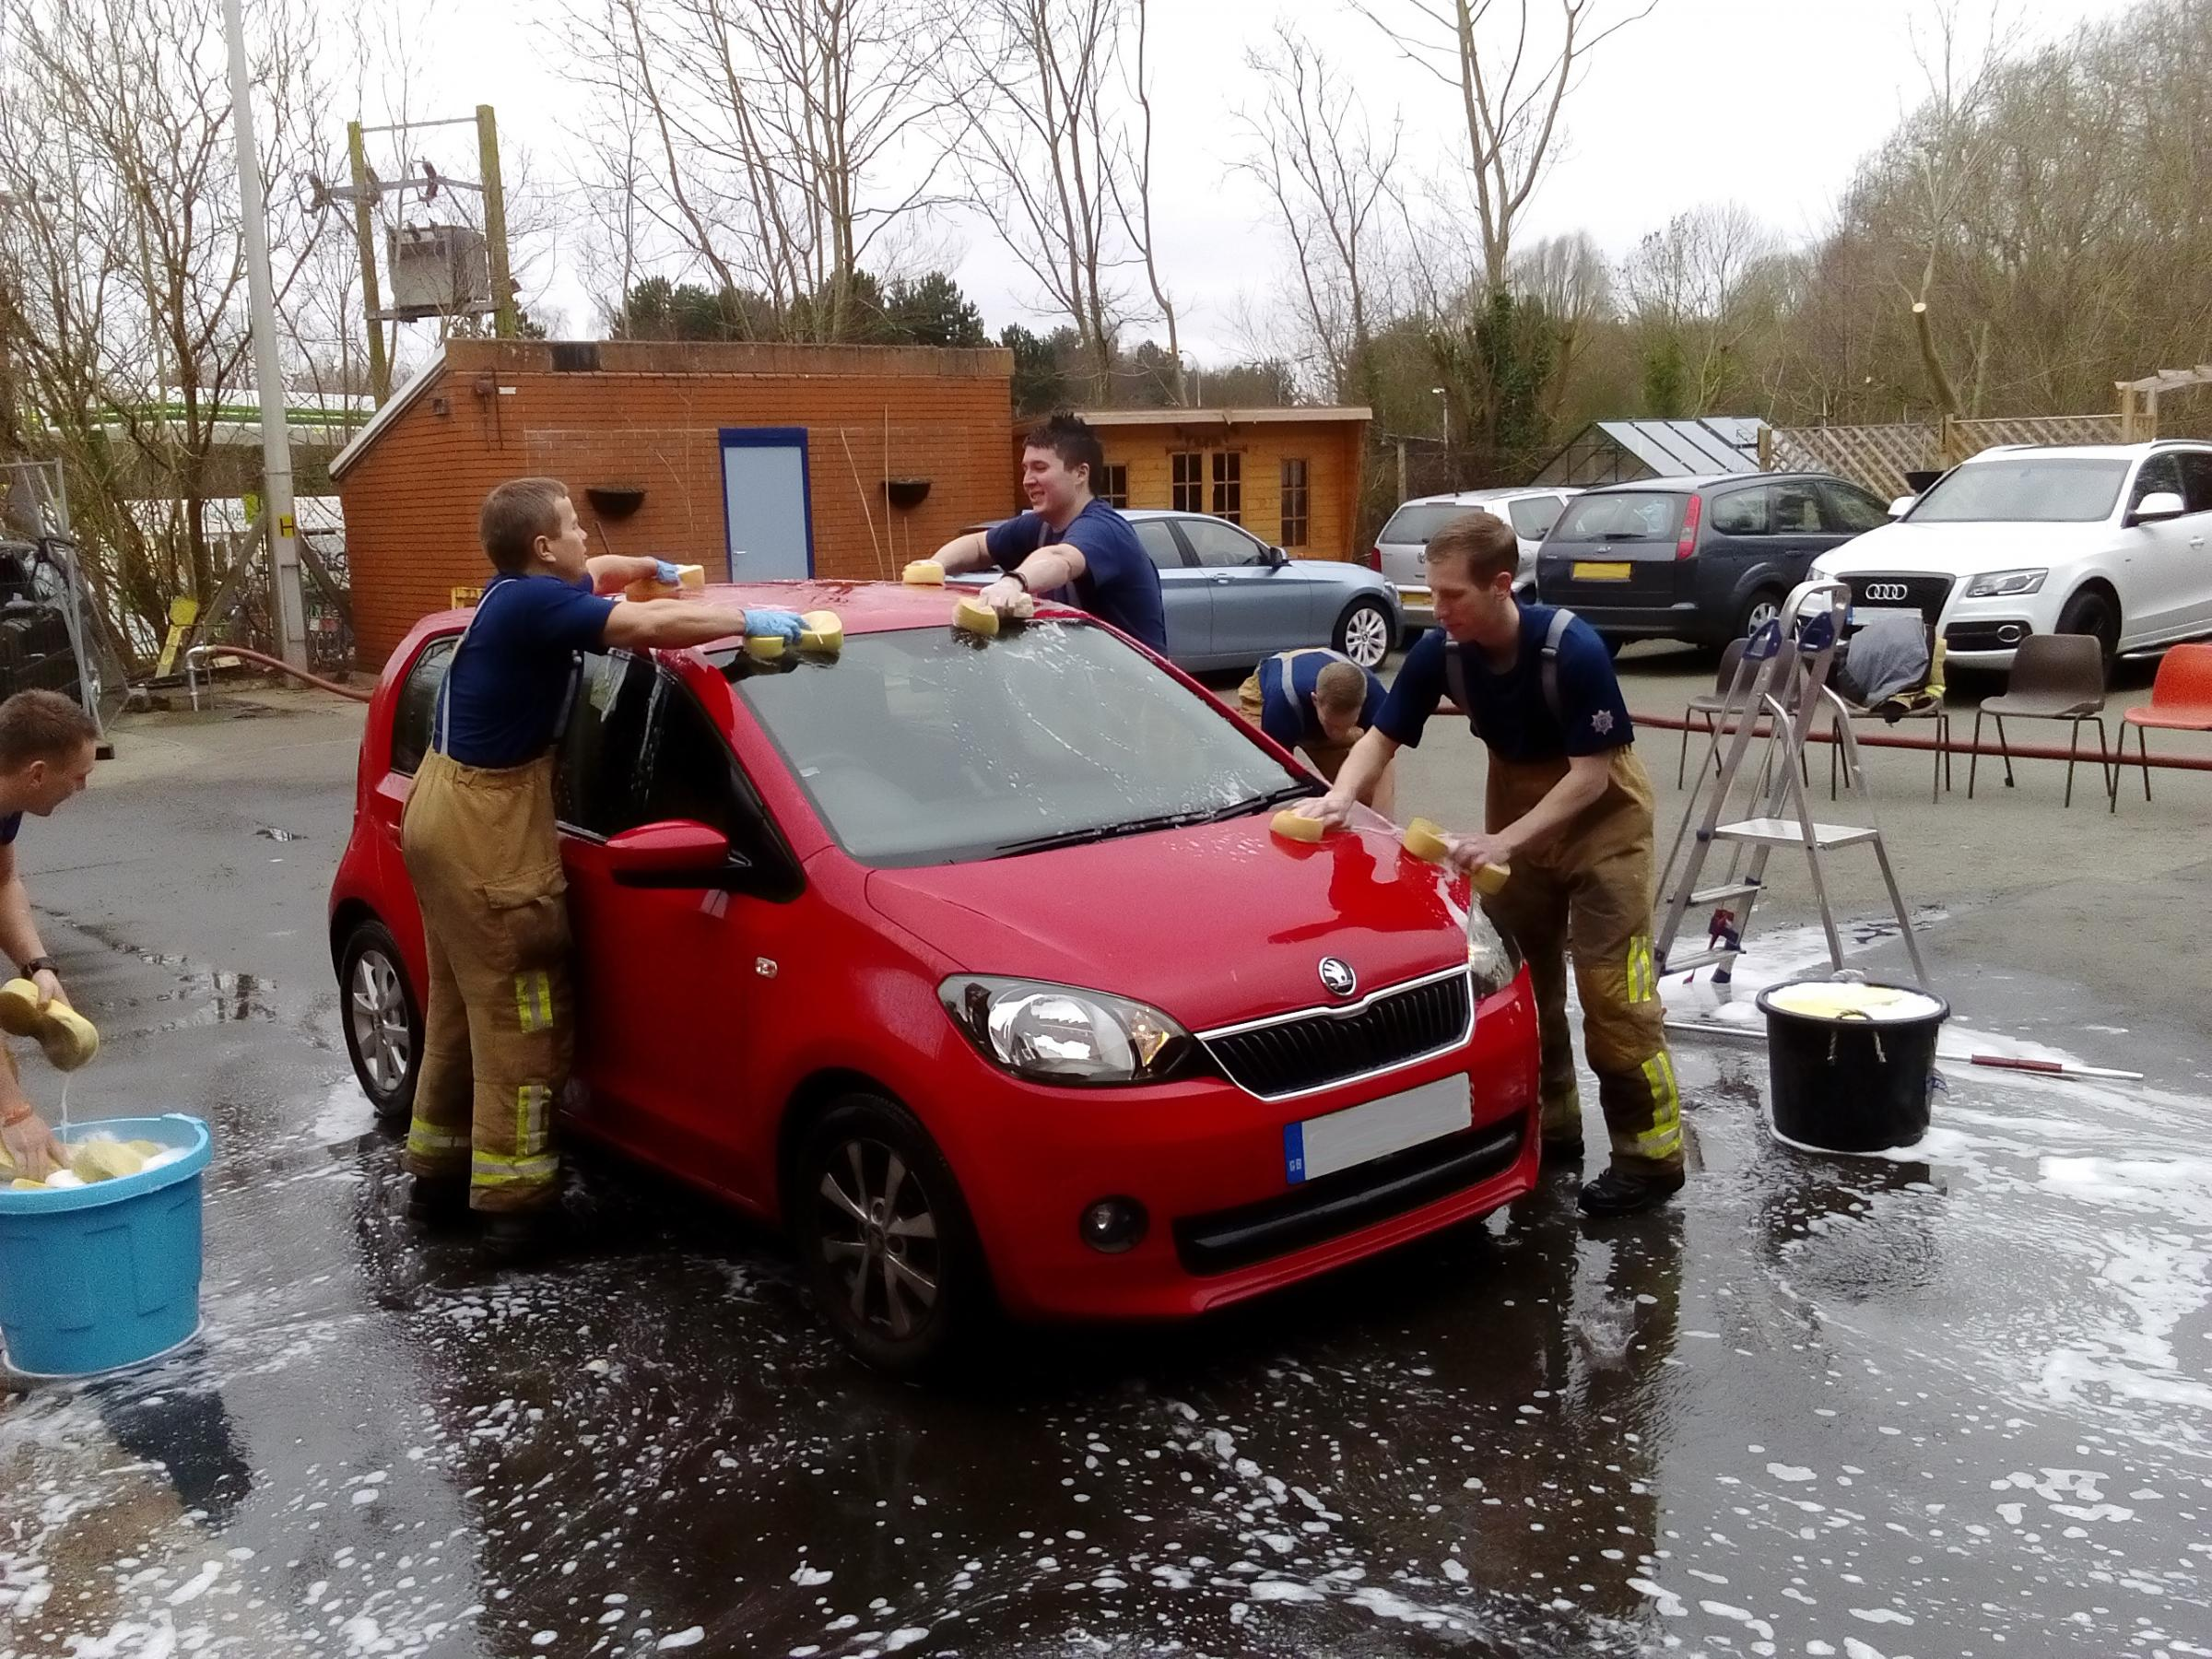 The Birchwood fire fighters washing cars last year